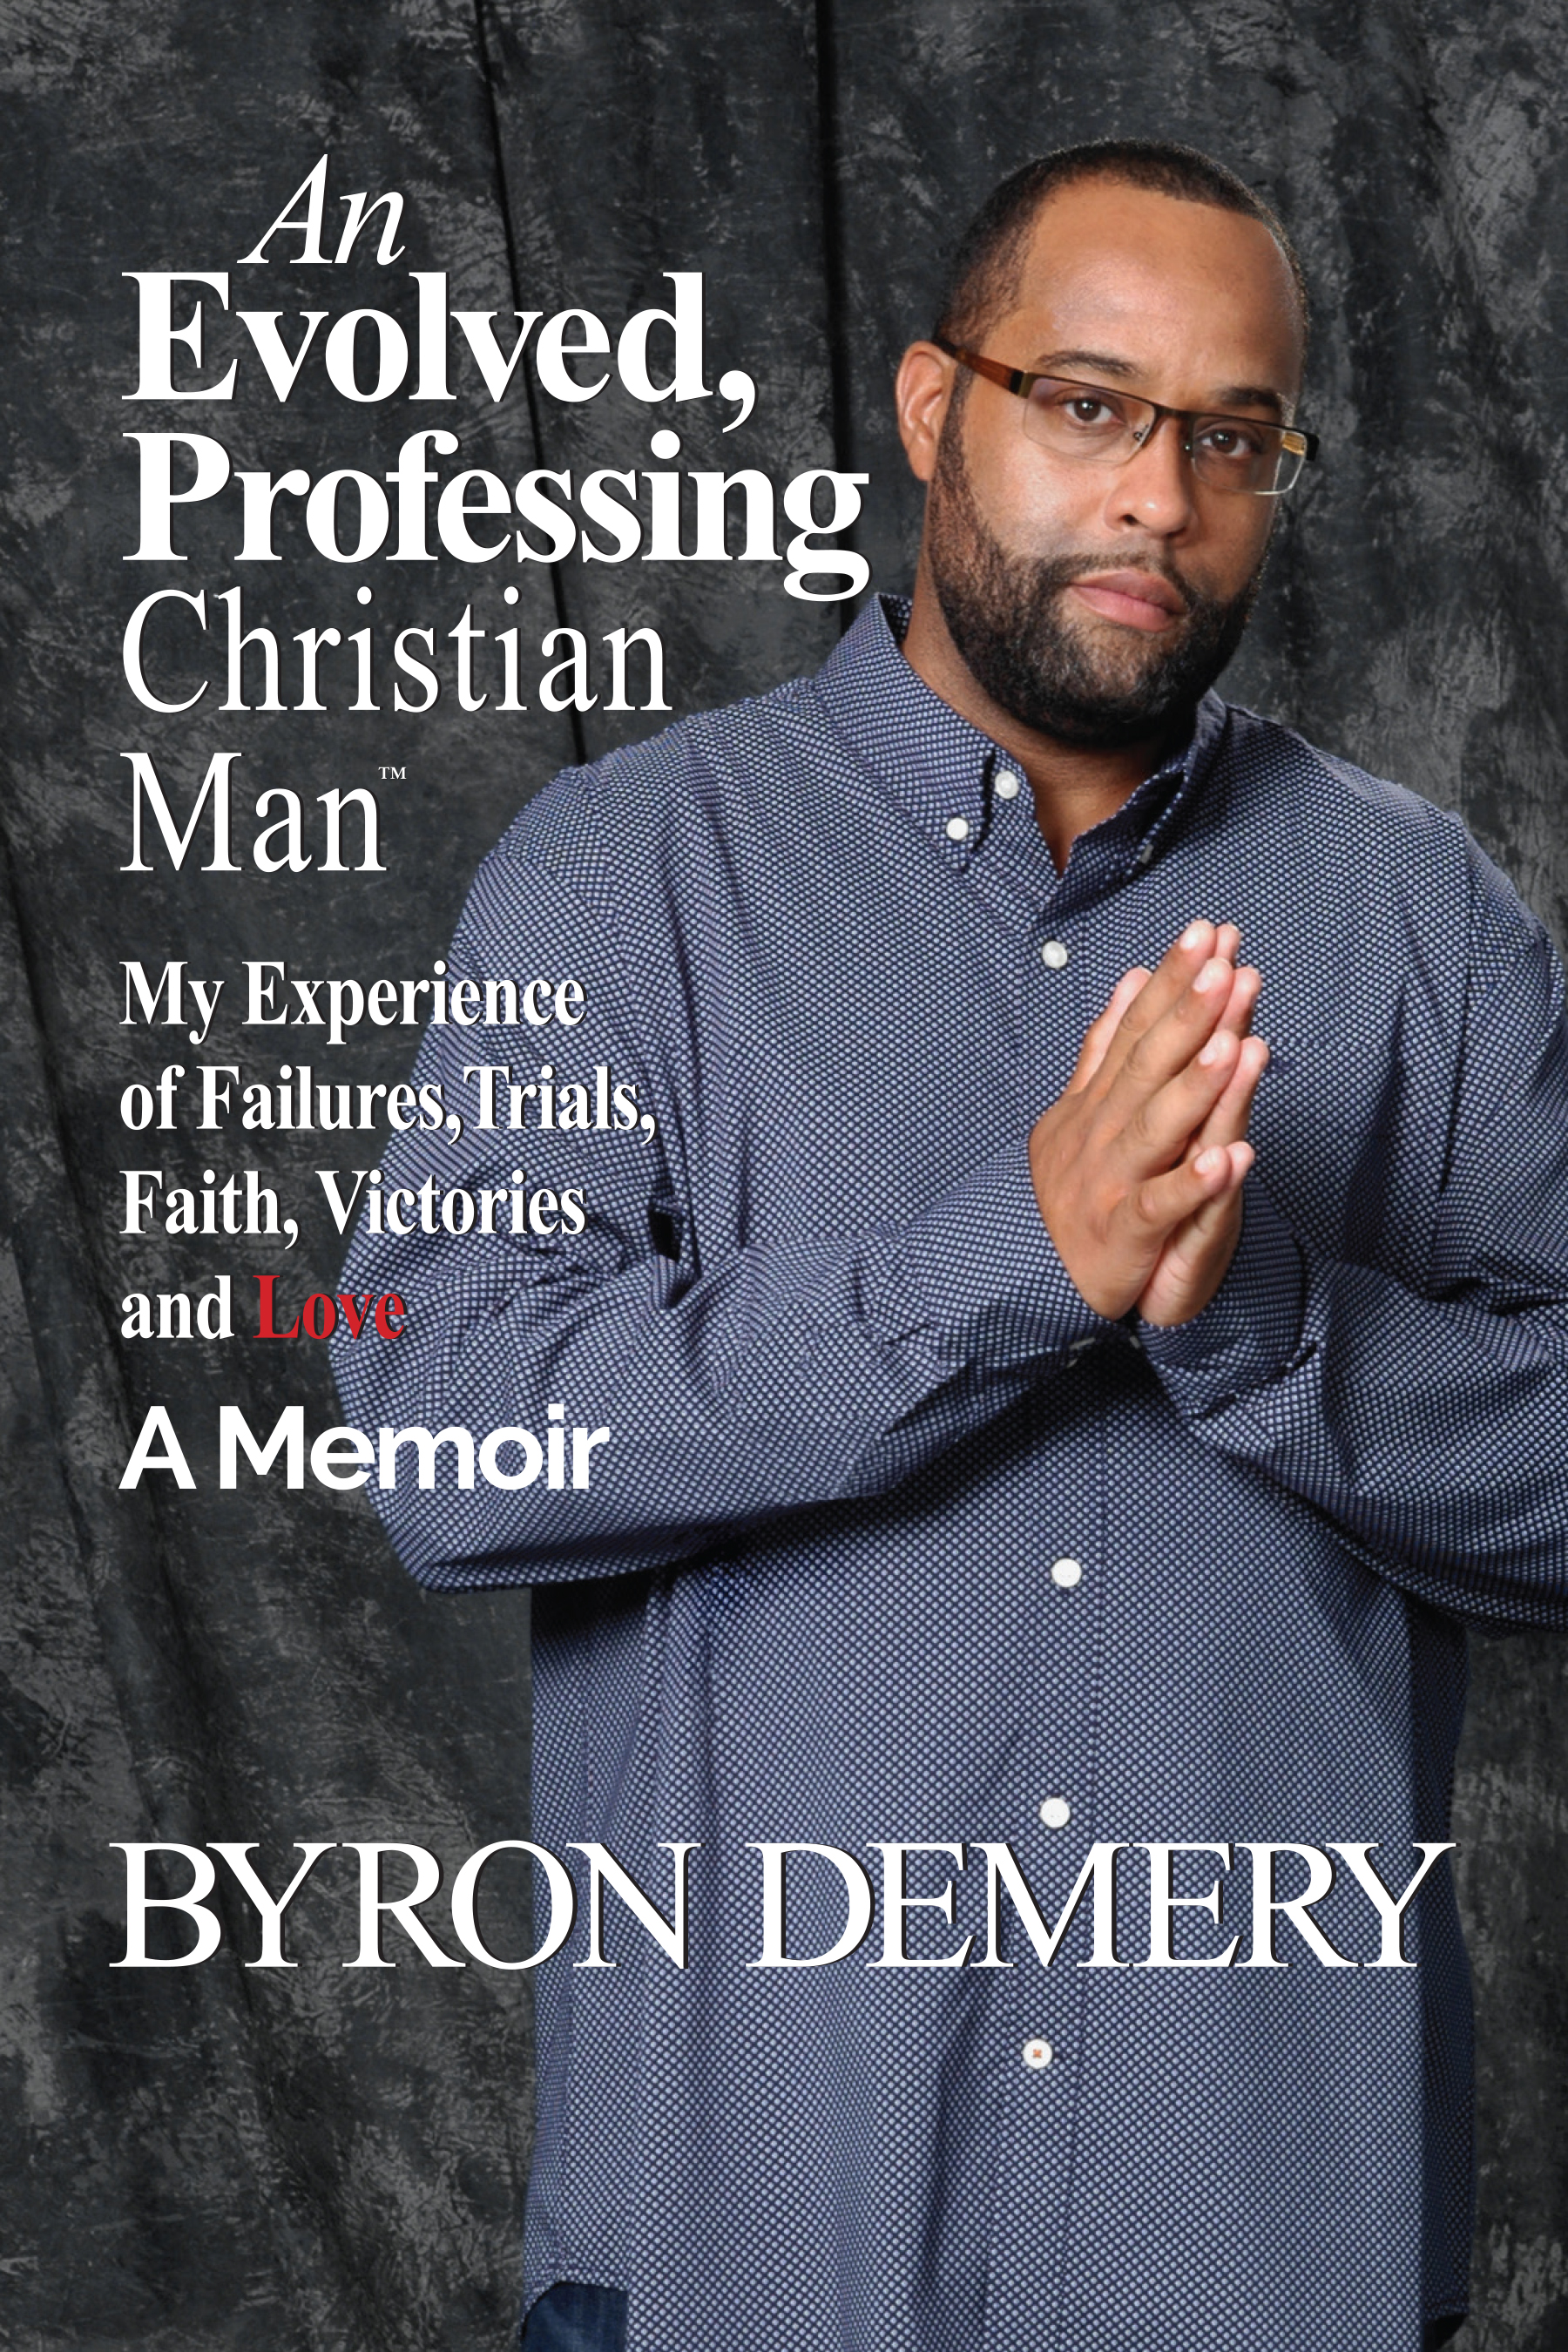 An Evolved, Professing Christian Man: My Experience of Failures, Trials, Faith, Victories and Love